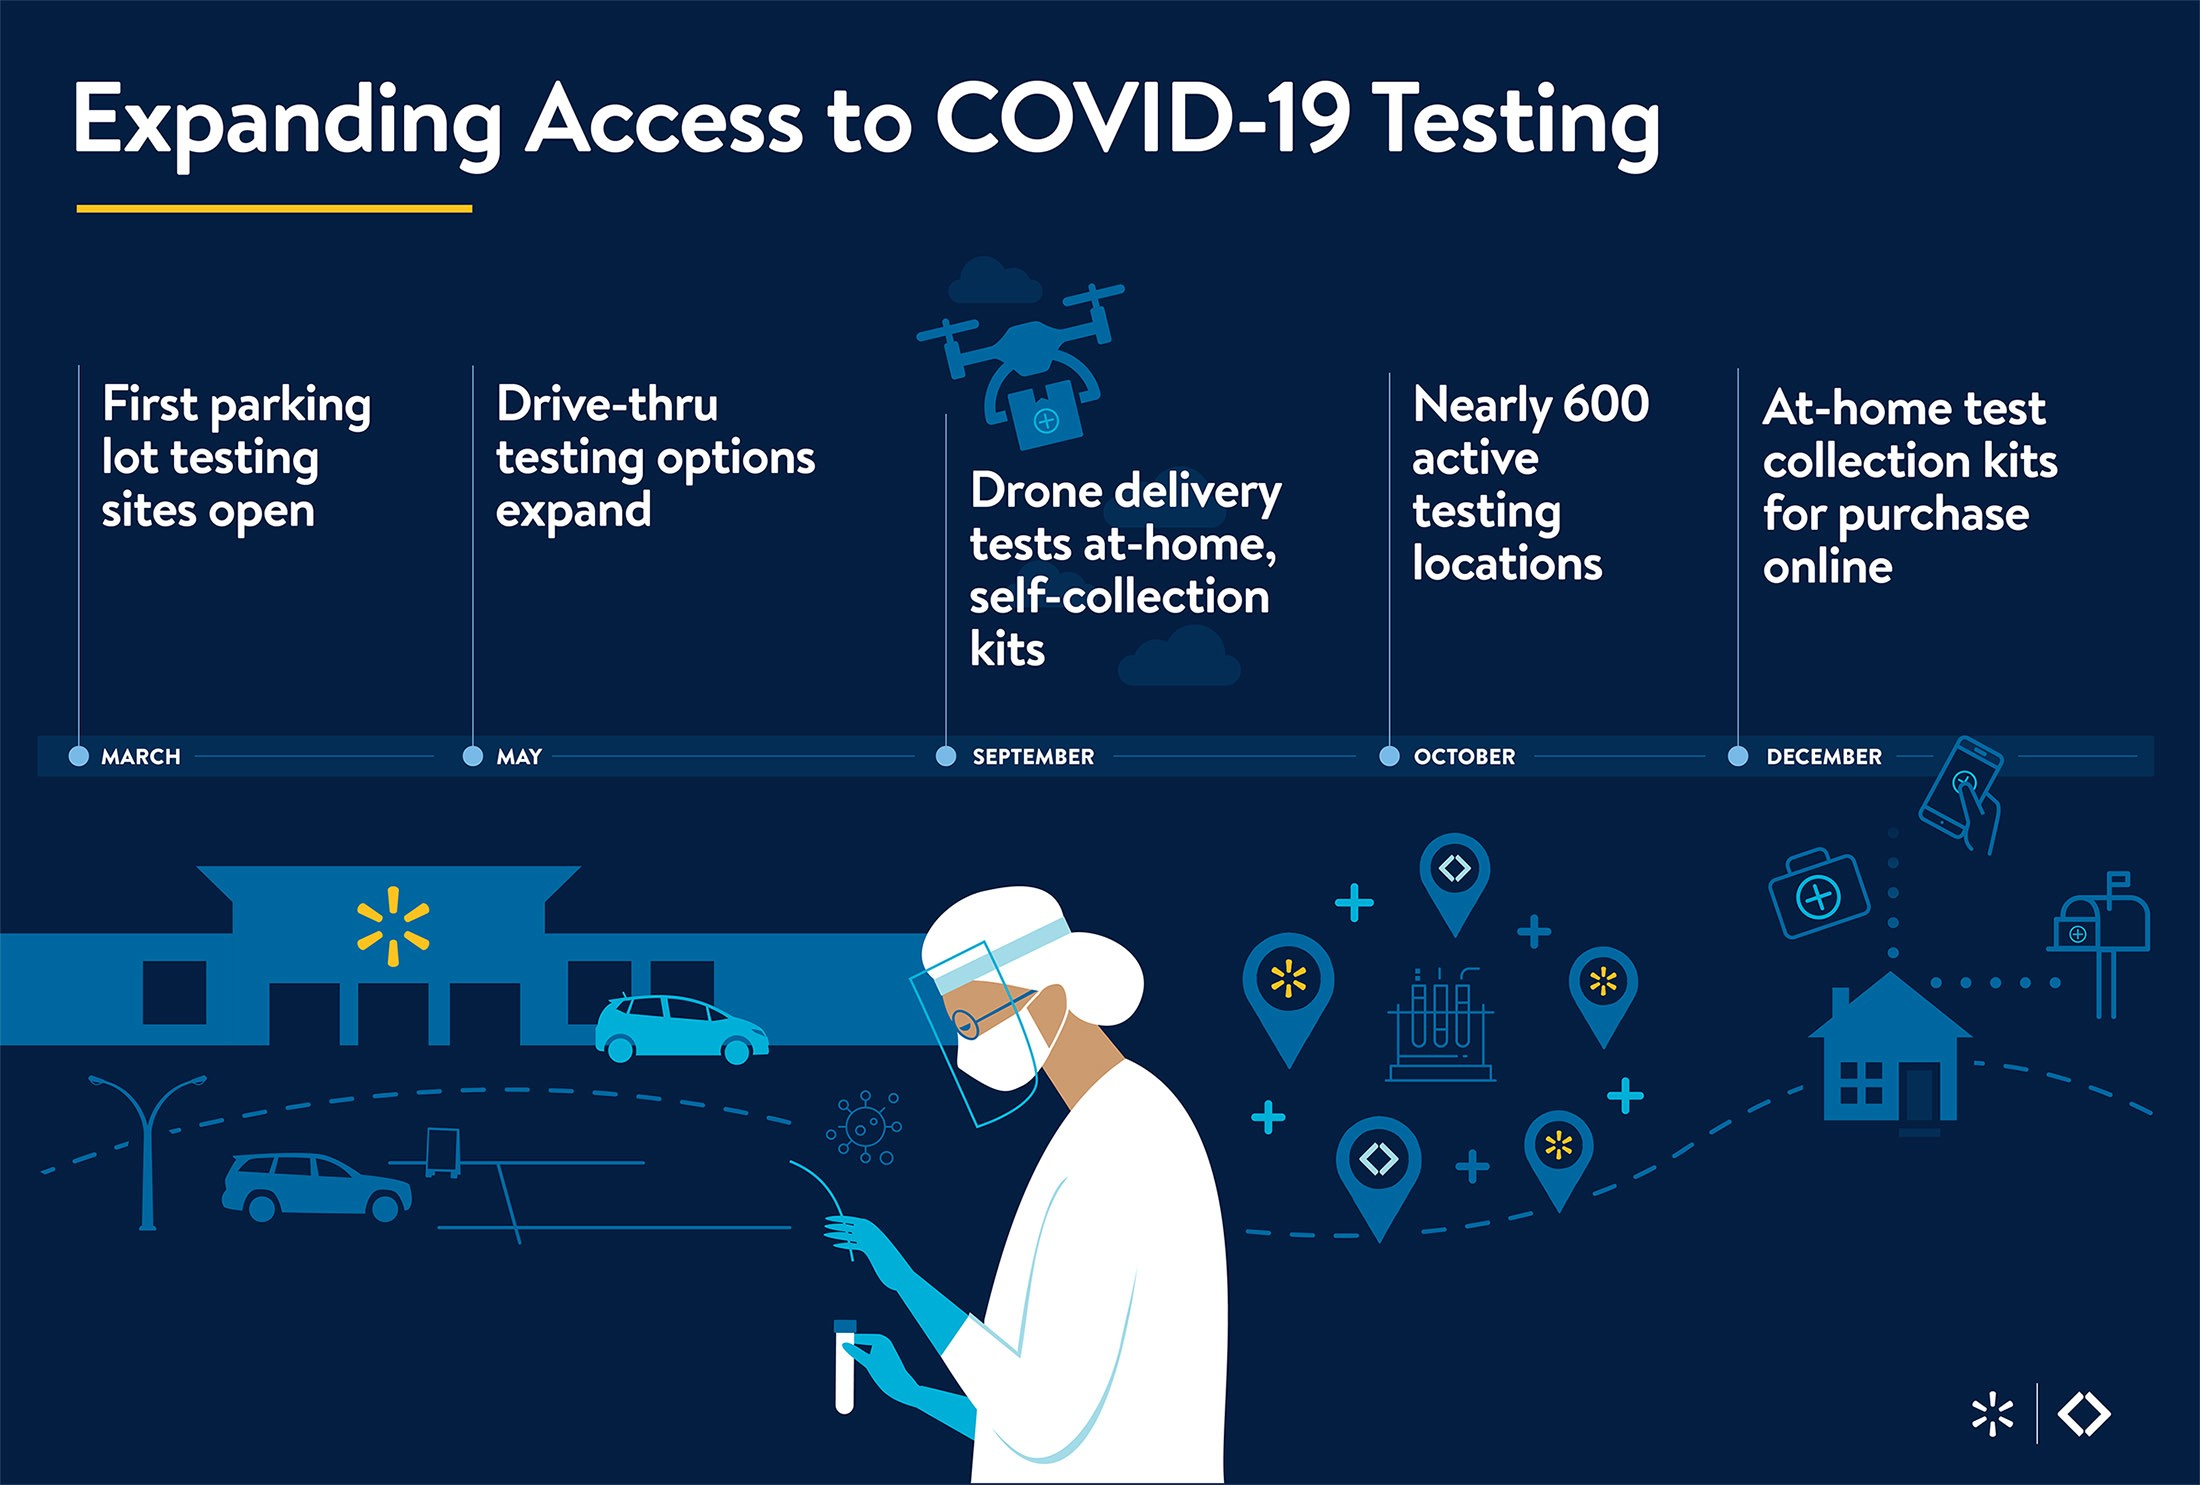 Covid-19 Testing Timeline Graphic